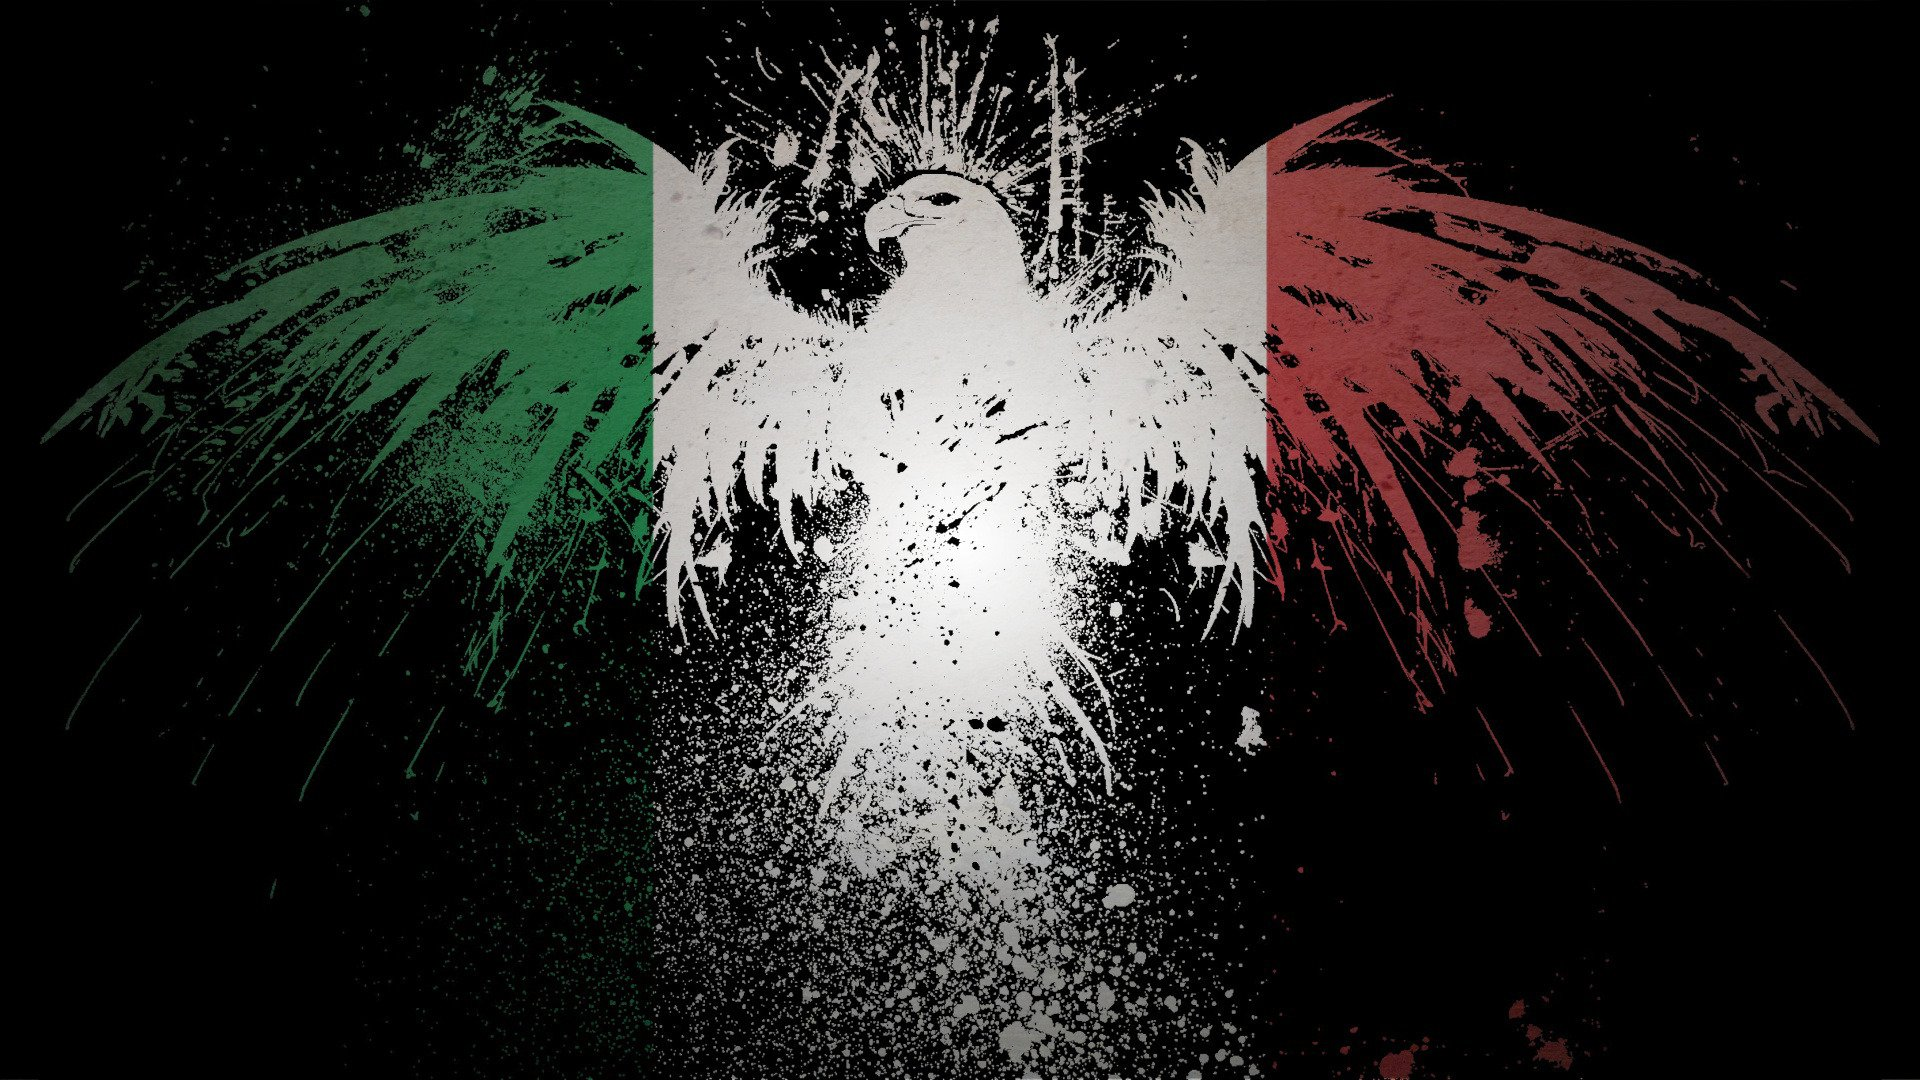 Italian-Flag-1920%C3%971080-Italian-Flag-Images-Adorable-Wallpape-wallpaper-wp3807240